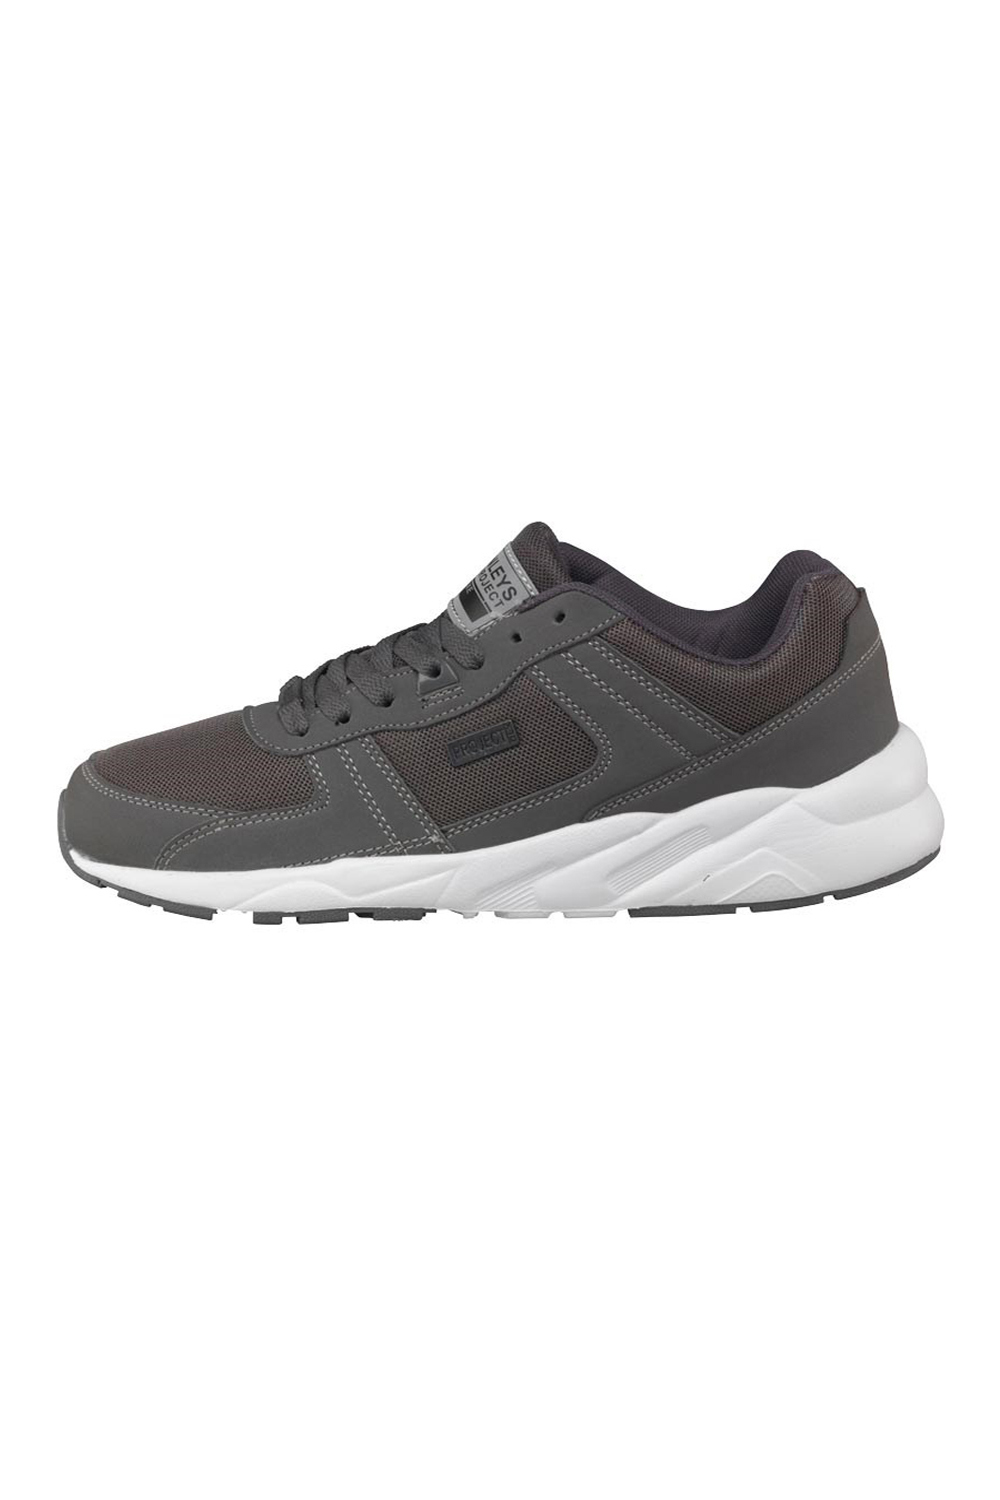 Henleys-Drexel-Markcus-Mens-Lace-Up-Low-Top-Trainers-Sport-Tennis-Casual-Shoes thumbnail 16